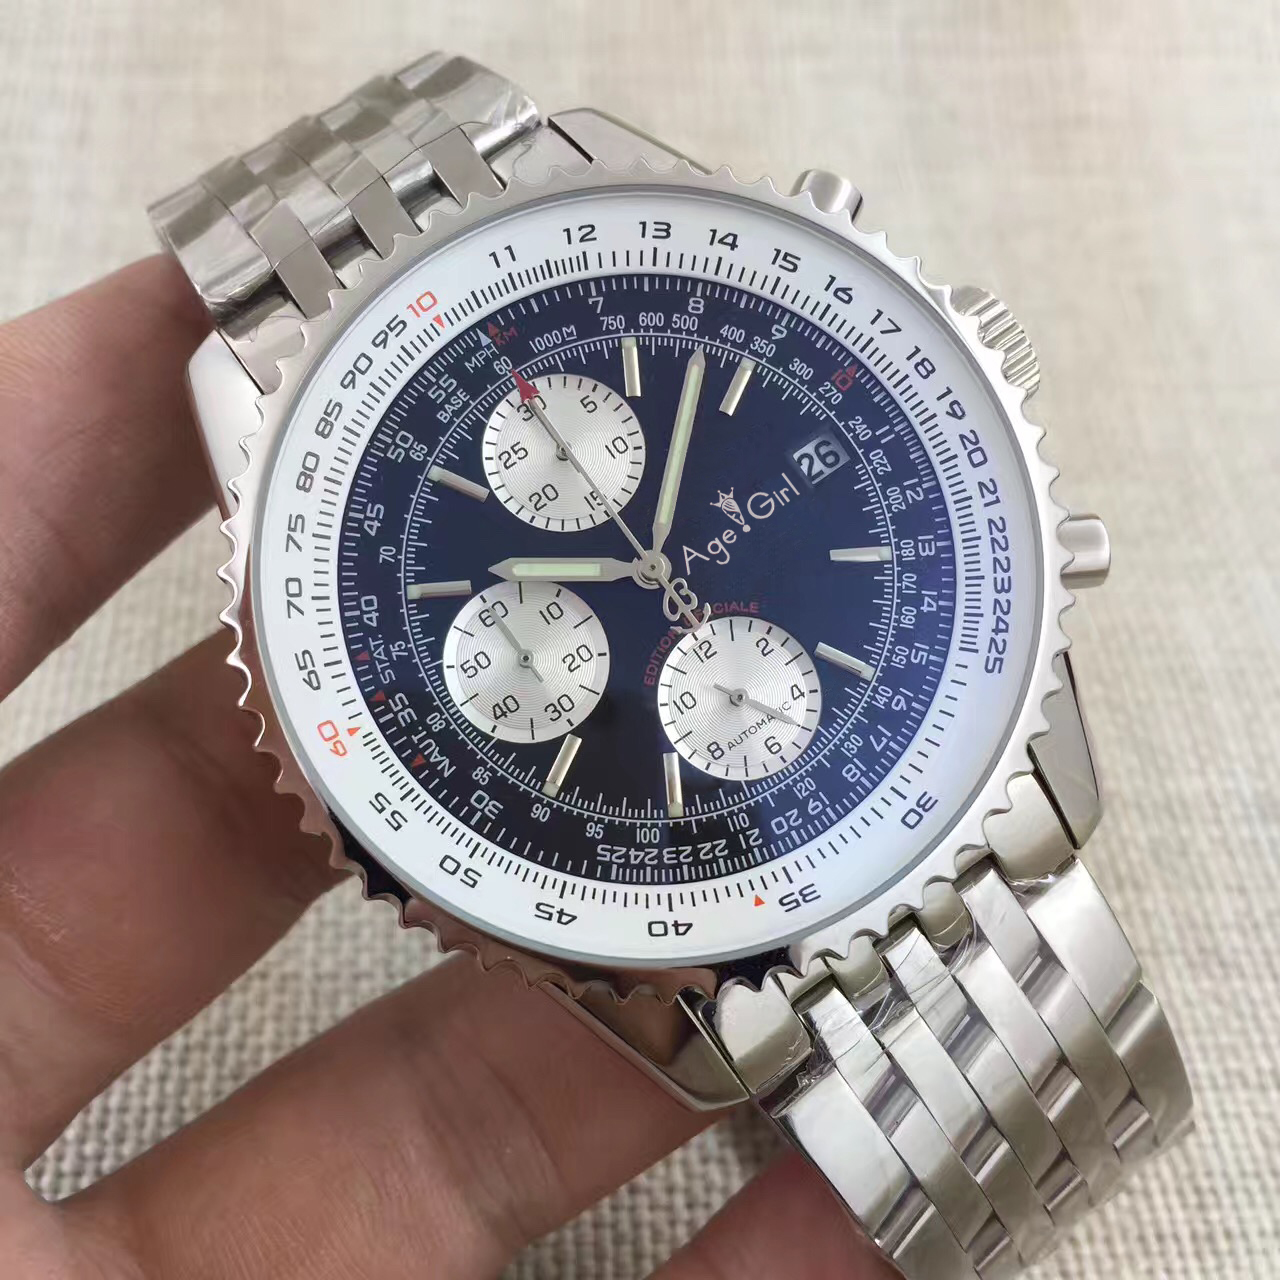 Luxury Brand New Men Automatic Mechanical Chronograph Stopwatch Black Blue Stainless Steel Sapphire Limited Watches AAA+Luxury Brand New Men Automatic Mechanical Chronograph Stopwatch Black Blue Stainless Steel Sapphire Limited Watches AAA+